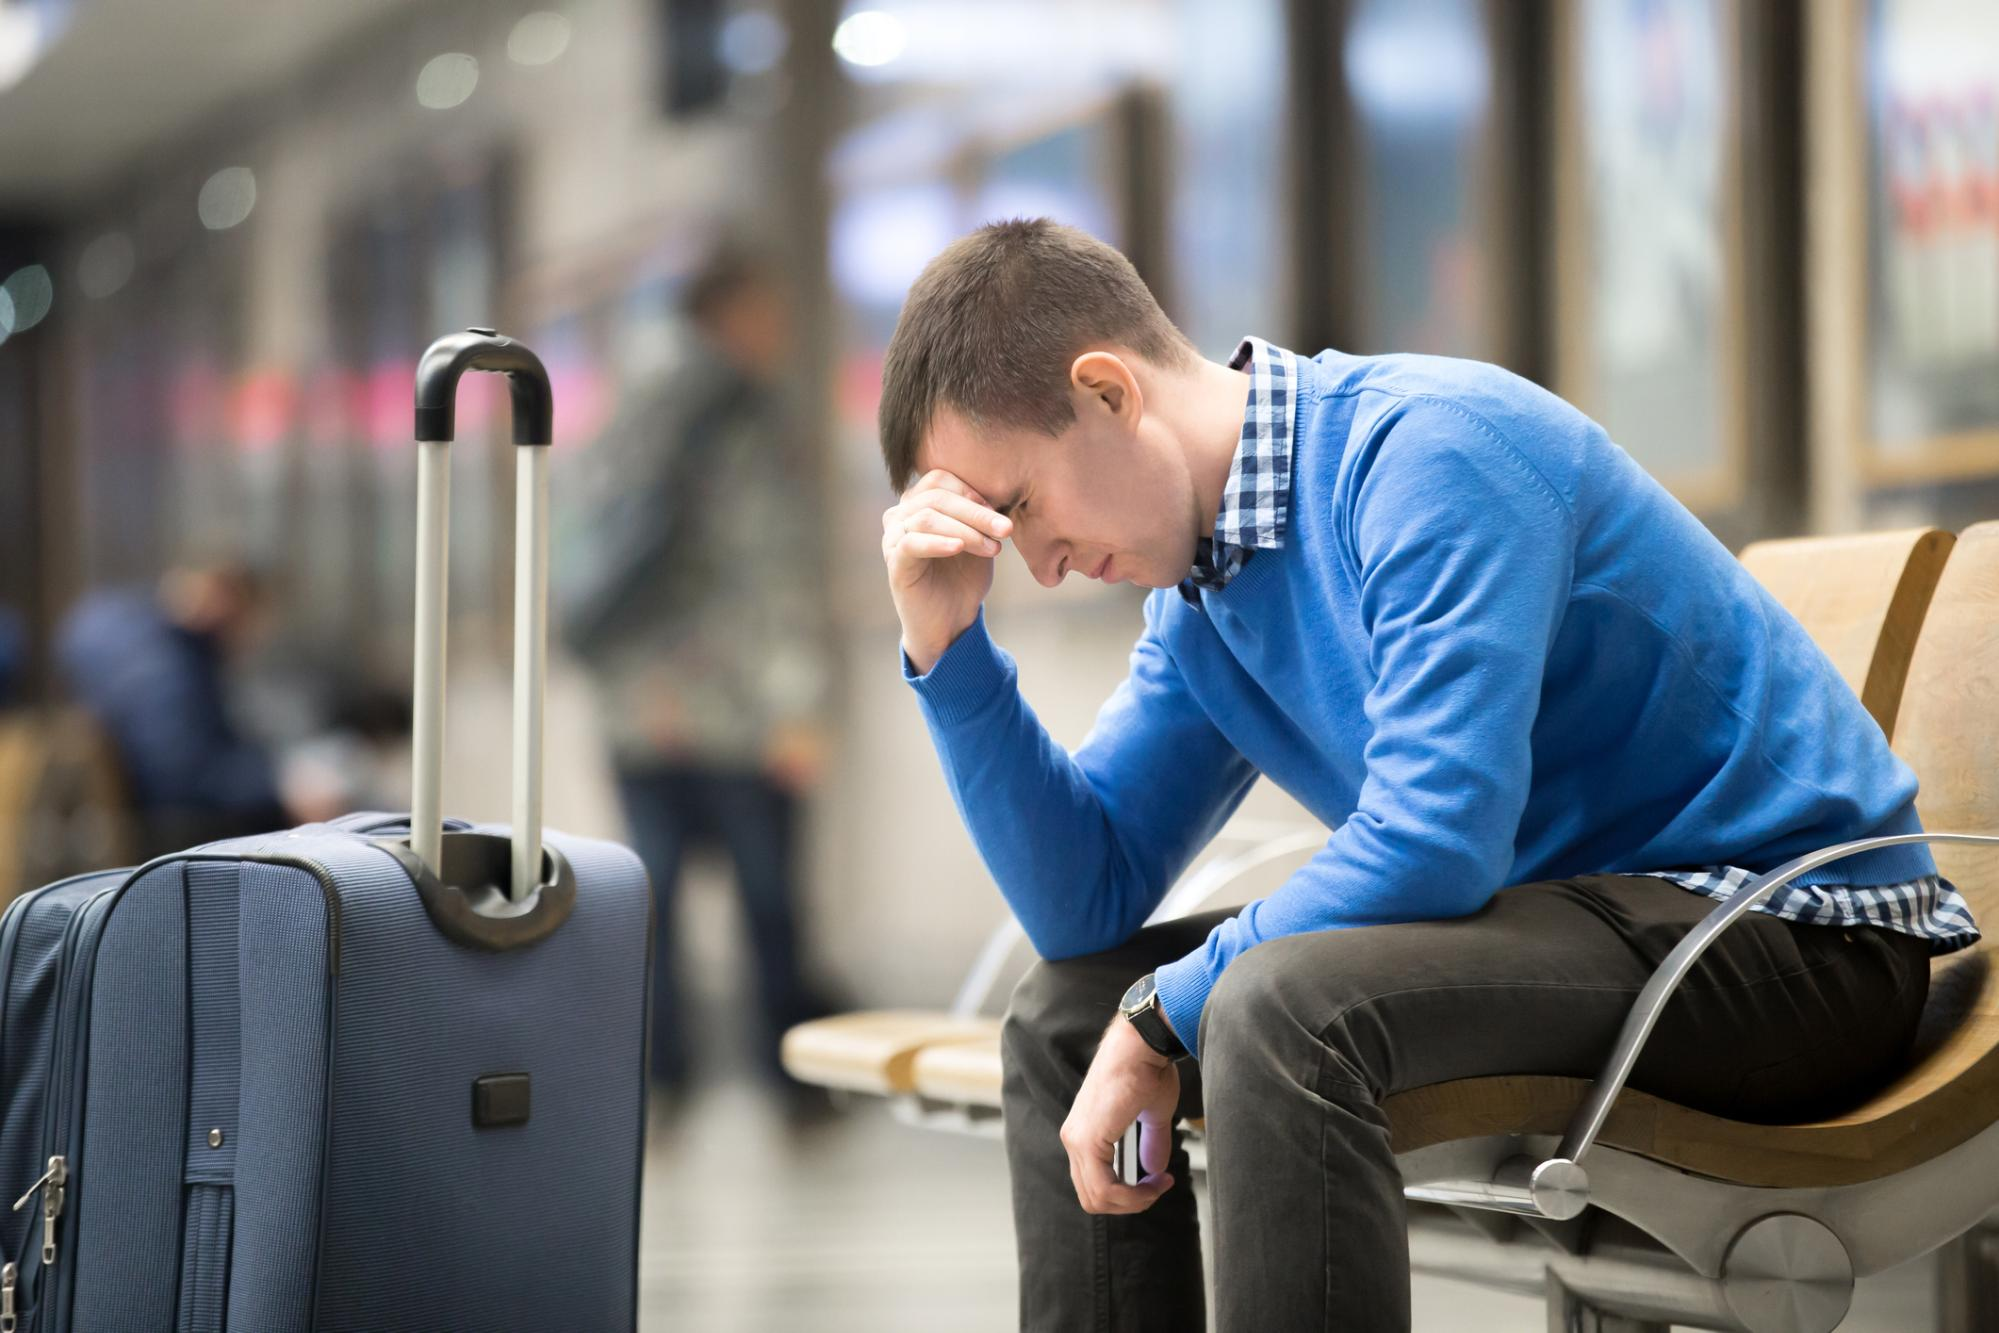 pained young man beside suitcase in airport